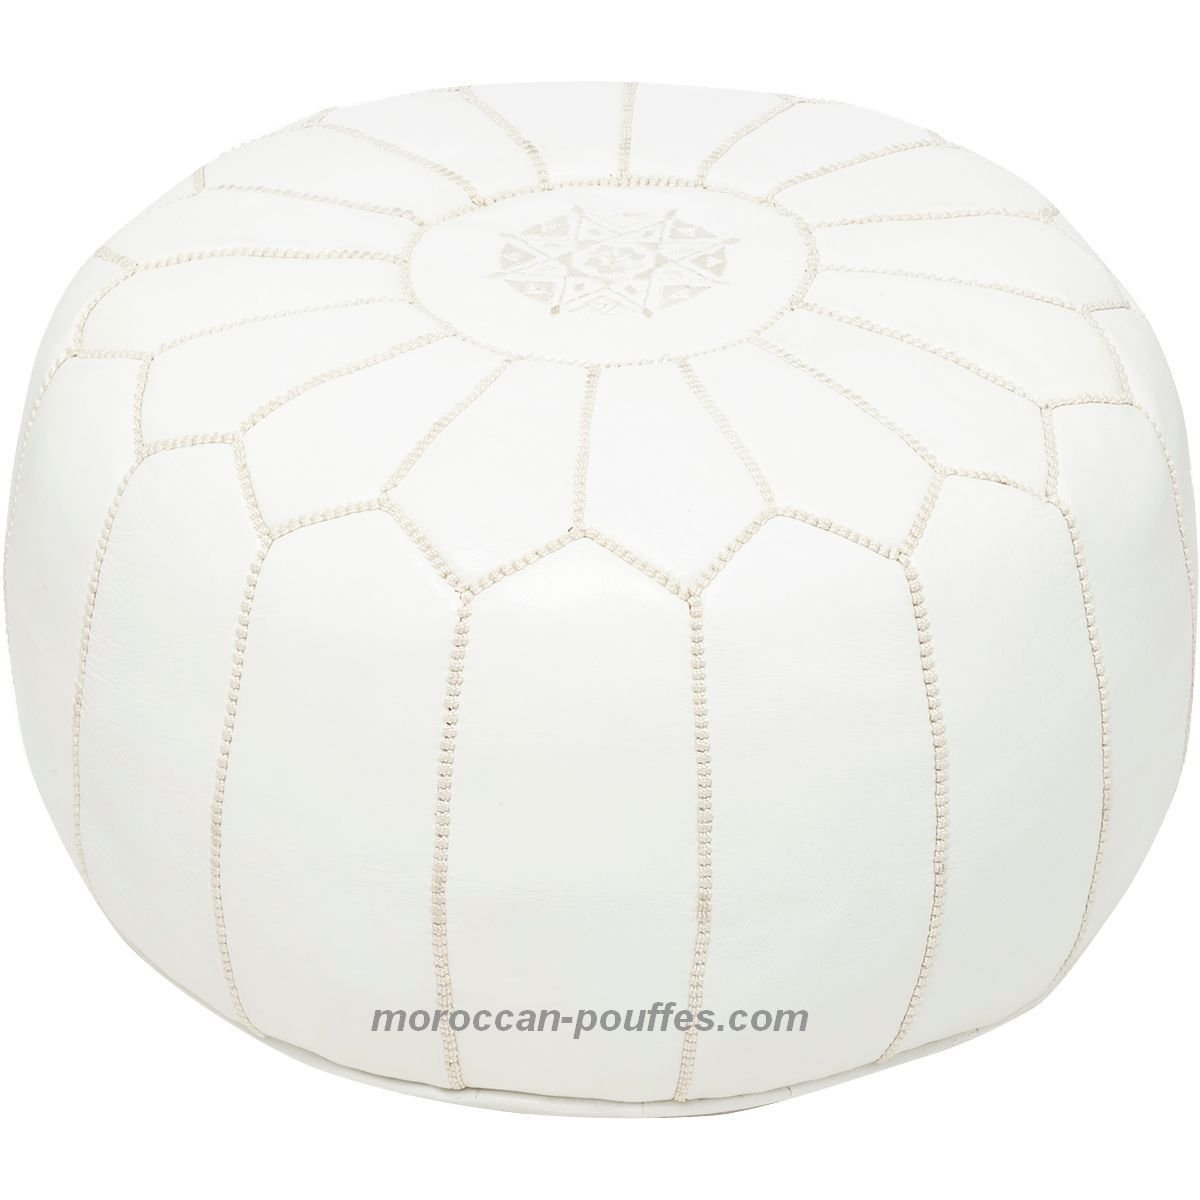 moroccan poufs leather luxury ottomans footstools white unstuffed